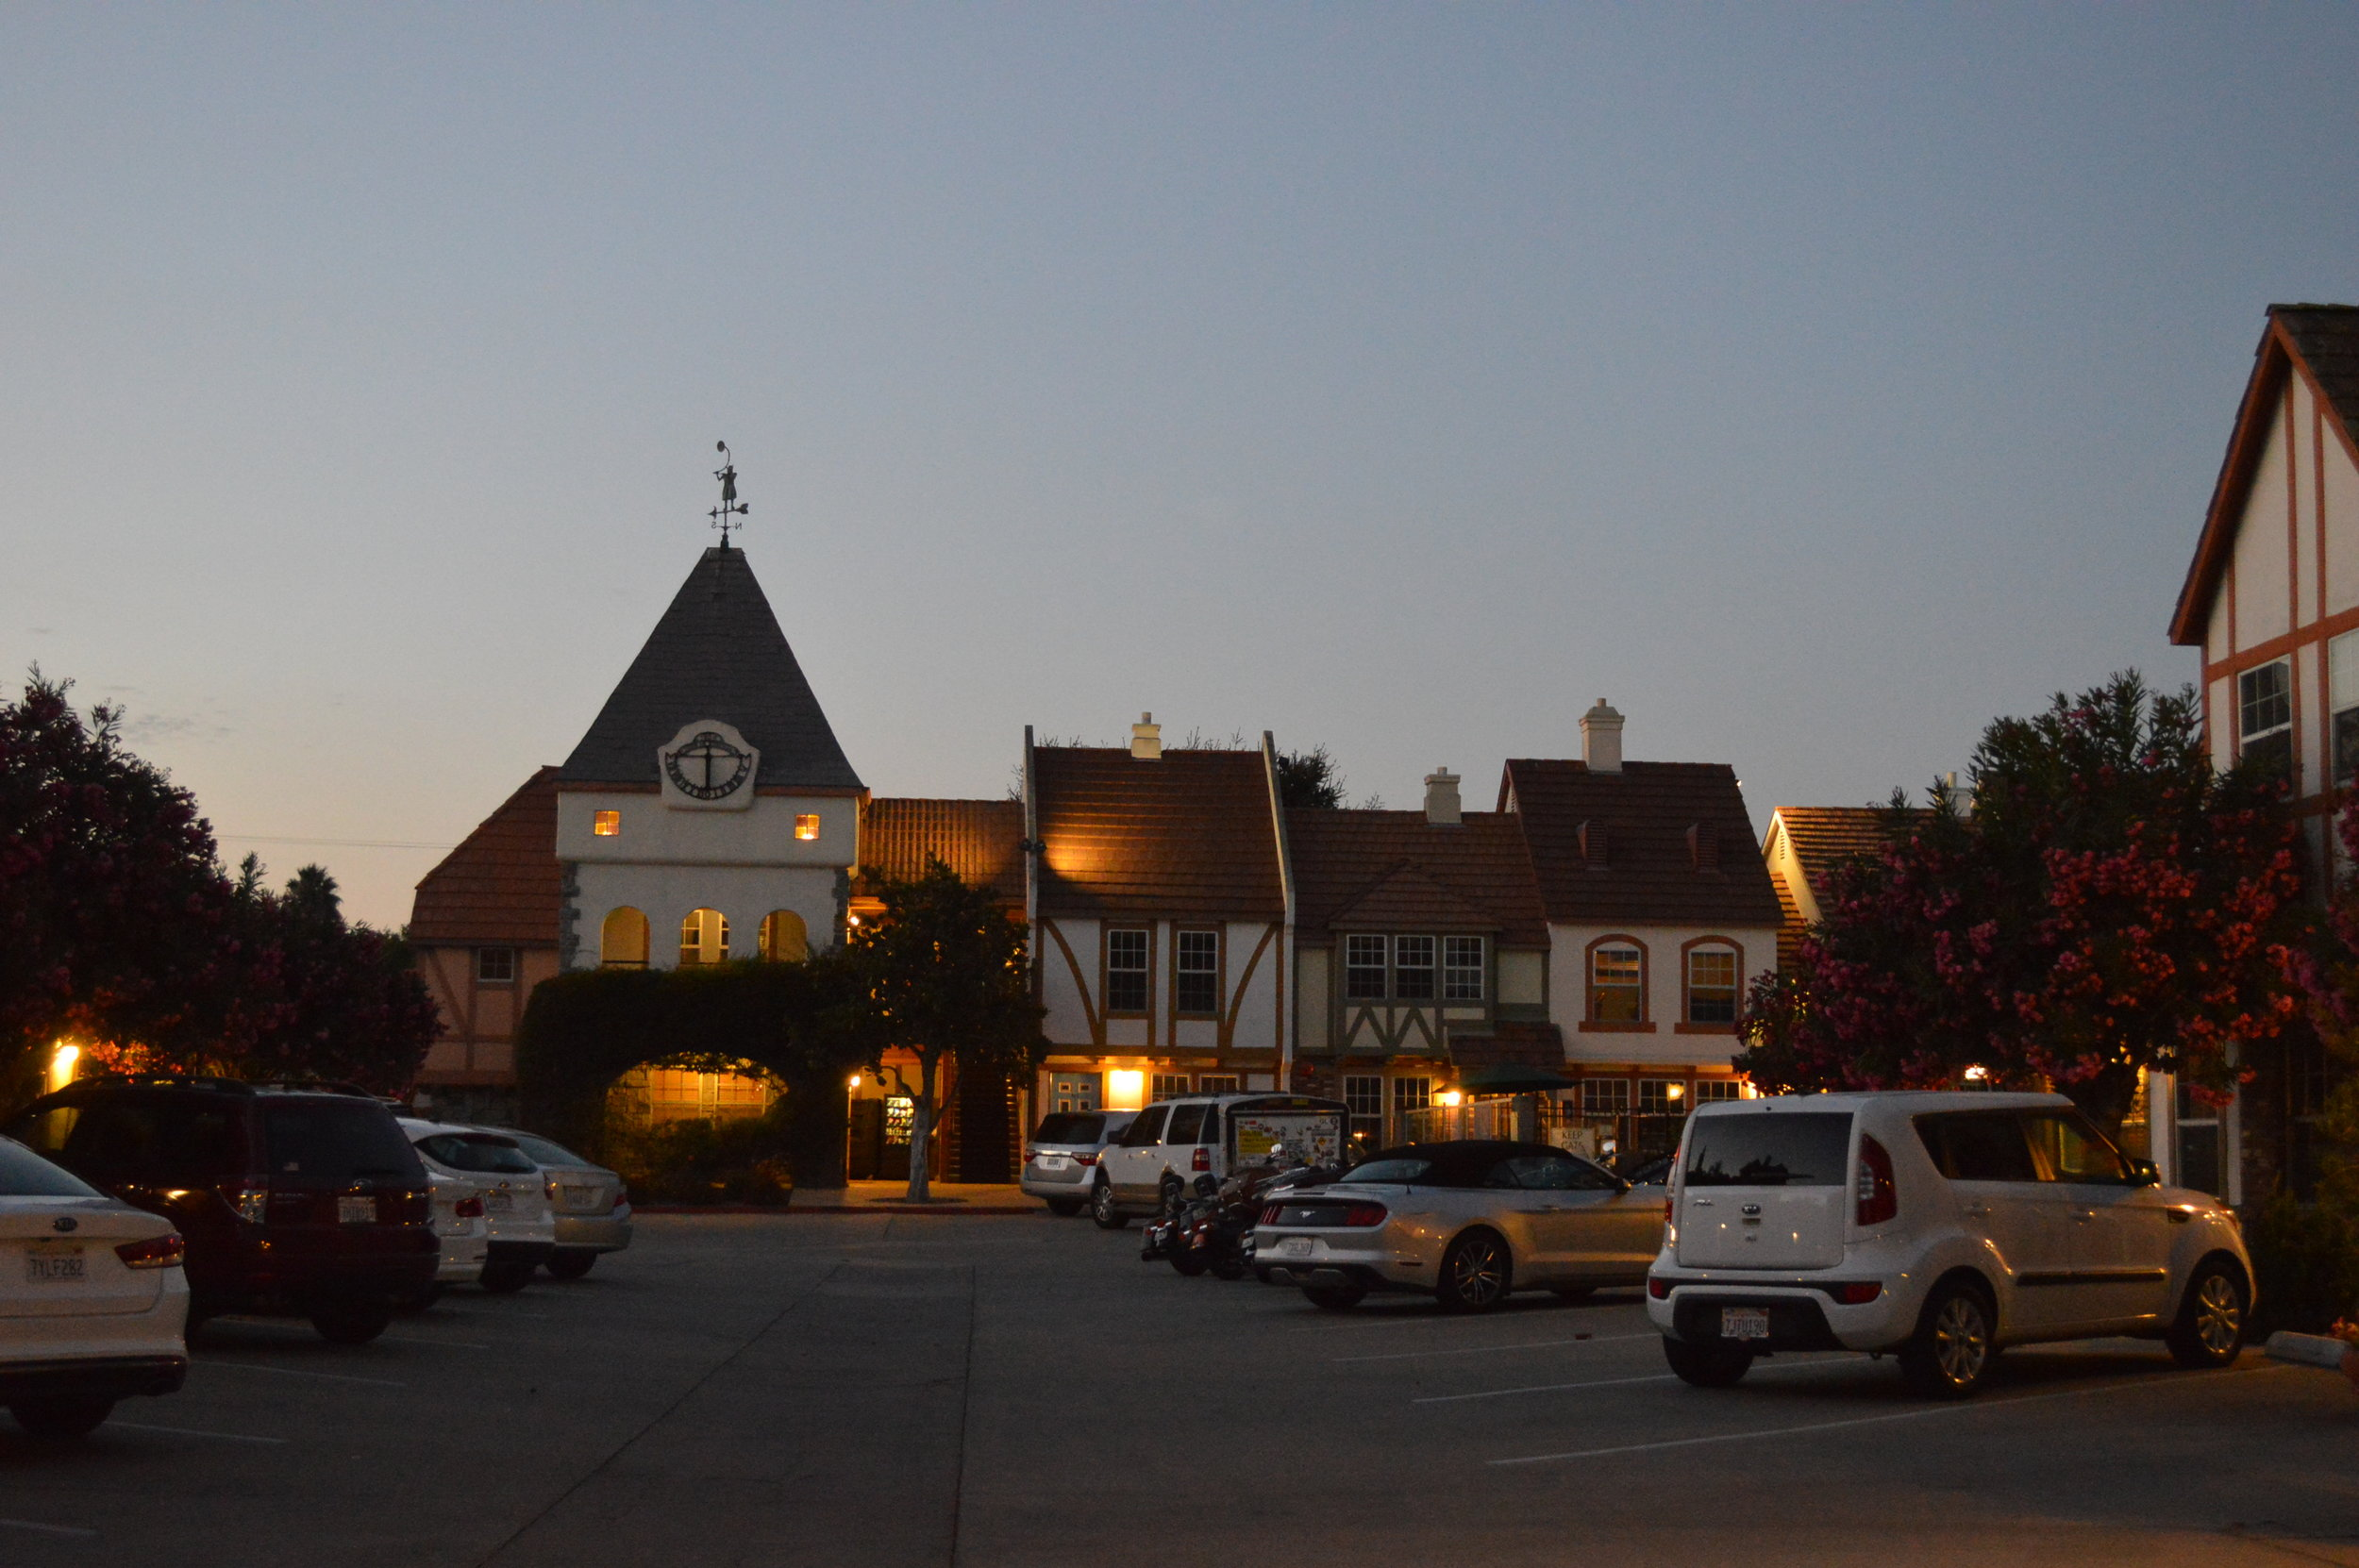 Road Tripping Central California - where to stop along the way! There are so many cute towns, wineries, and ocean views to see in California. Highly recommend traveling the California coast!